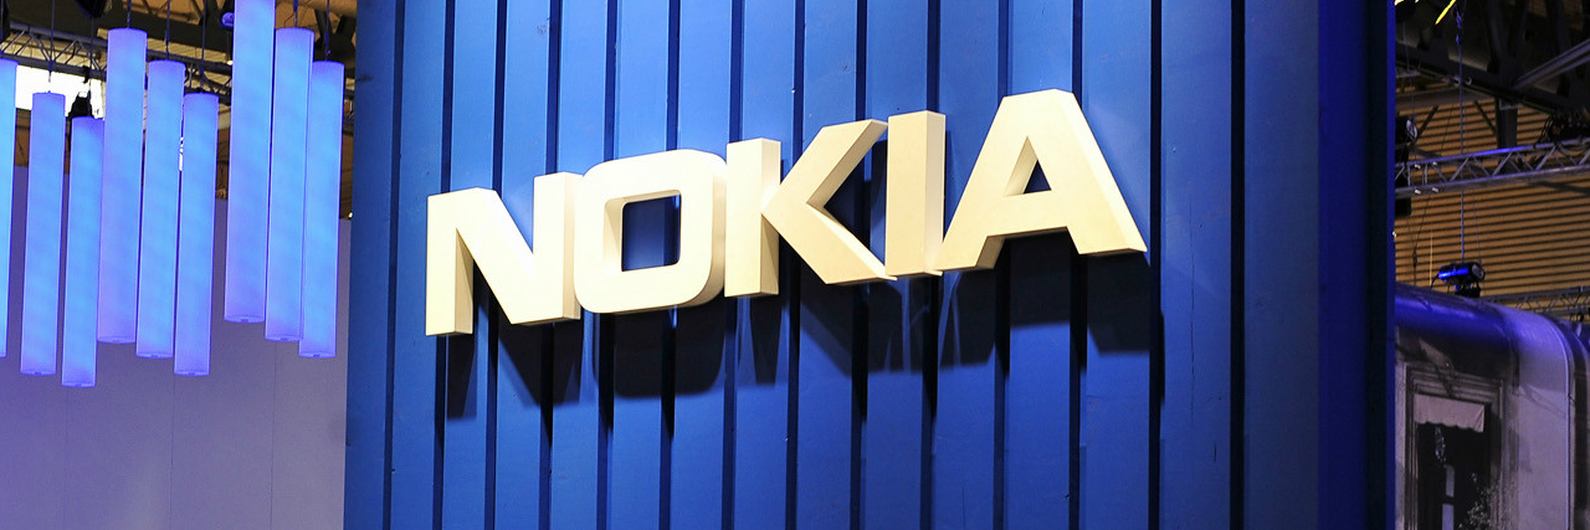 Nokia pode apresentar tablet gigante no Mobile World Congress